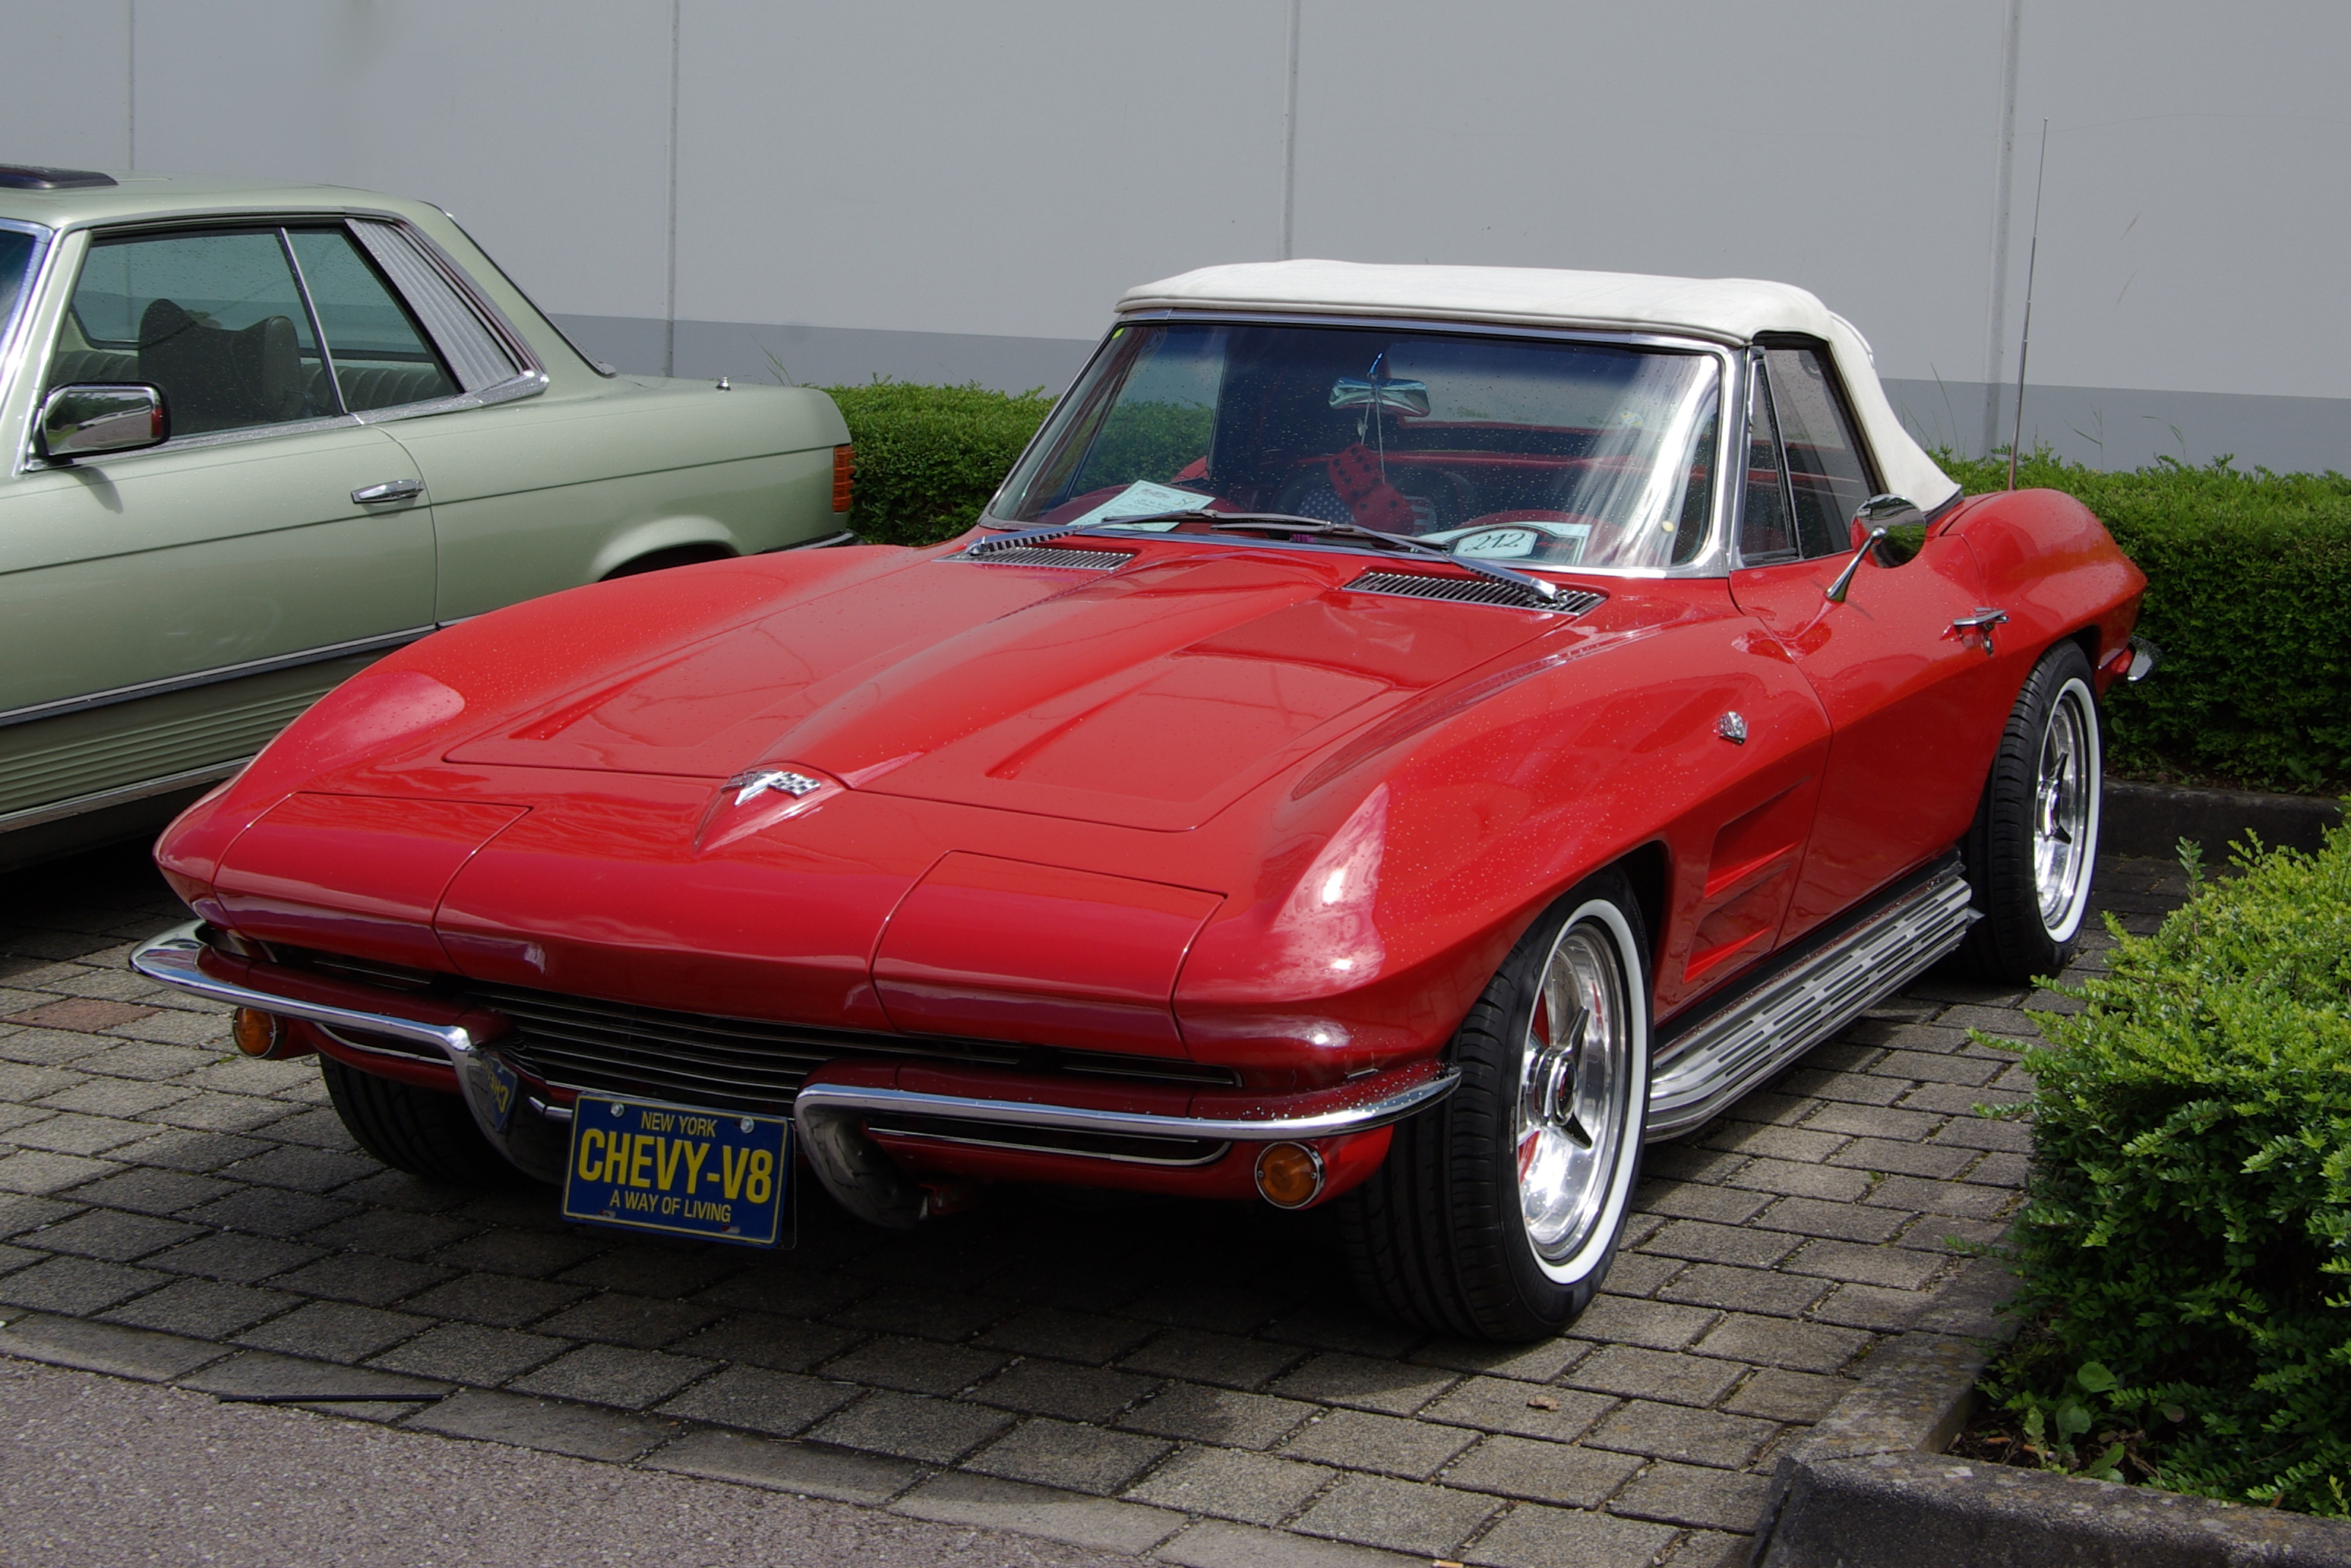 Chevrolet Corvette (C2) - Wikipedia